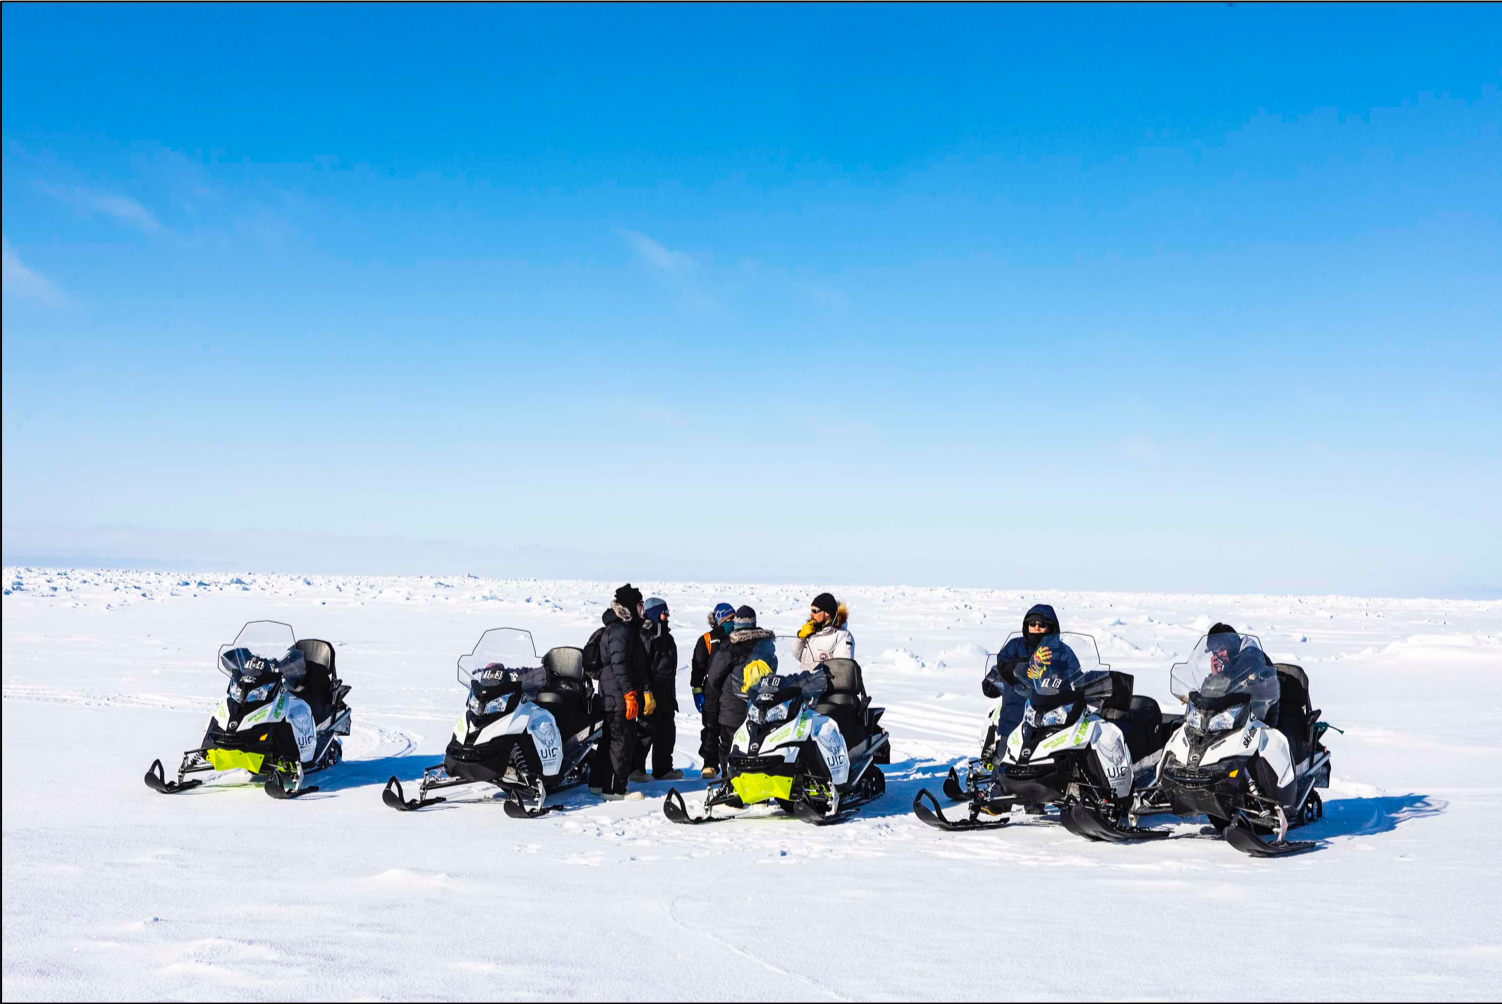 Scientists on snowmobiles